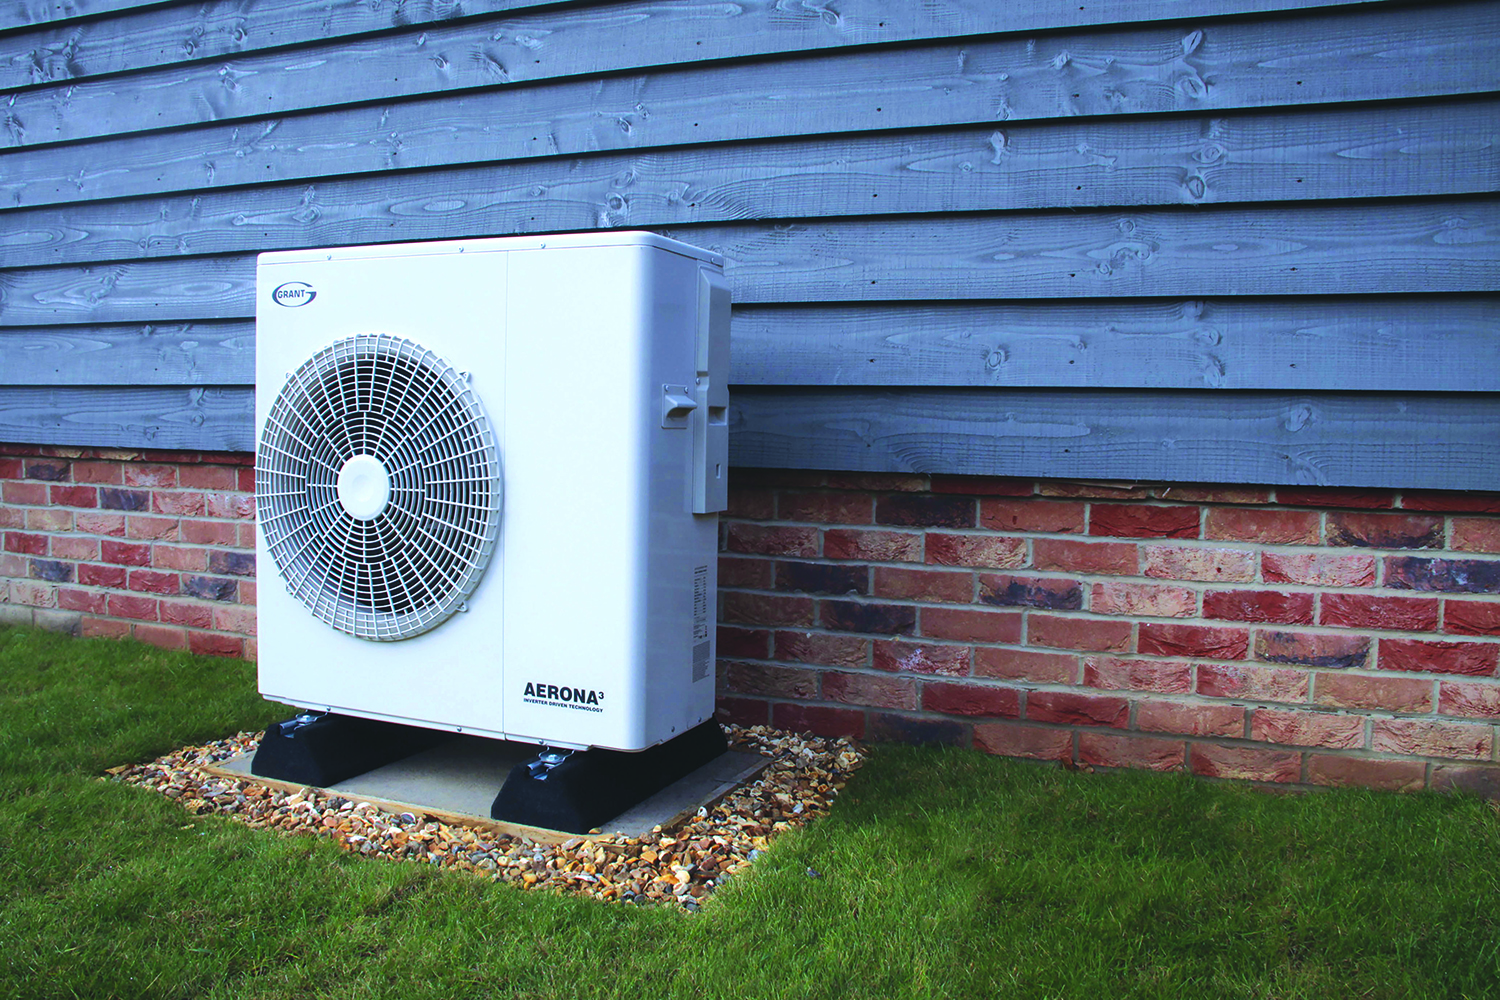 Aerona³ heat pump range offers exceptional home heating efficiencies at low temperatures